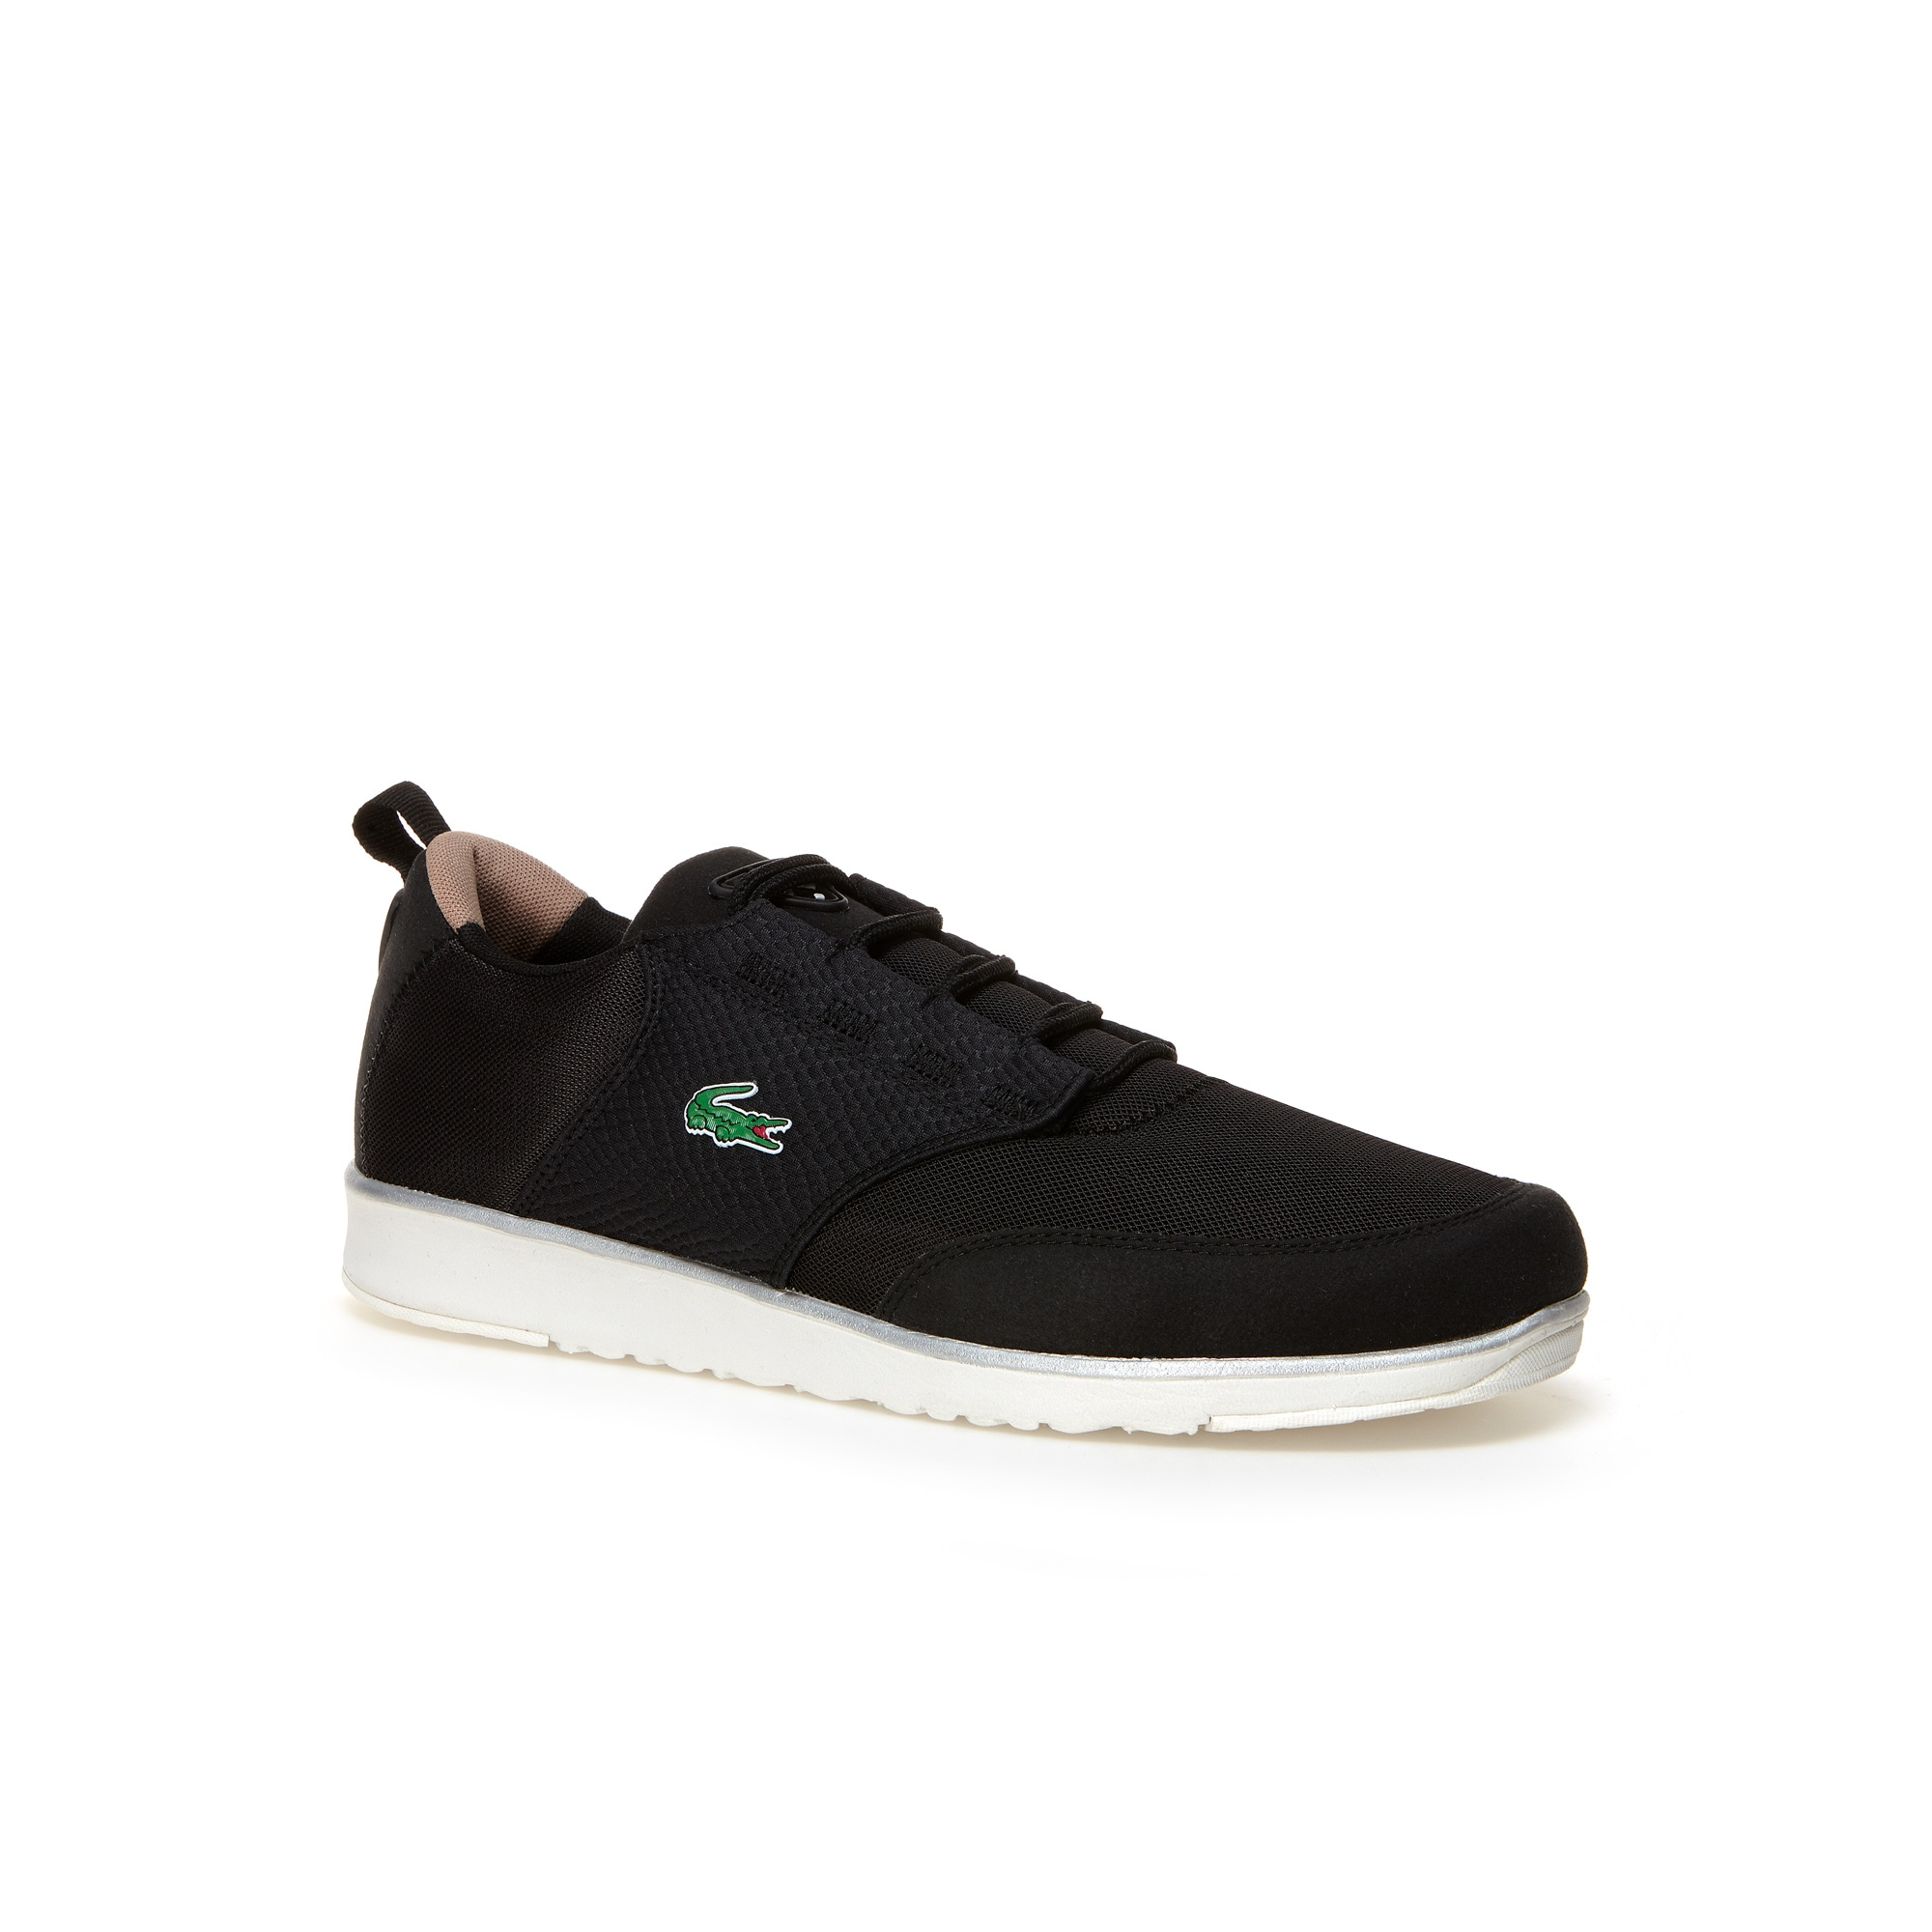 Men's L.ight Textile Trainers